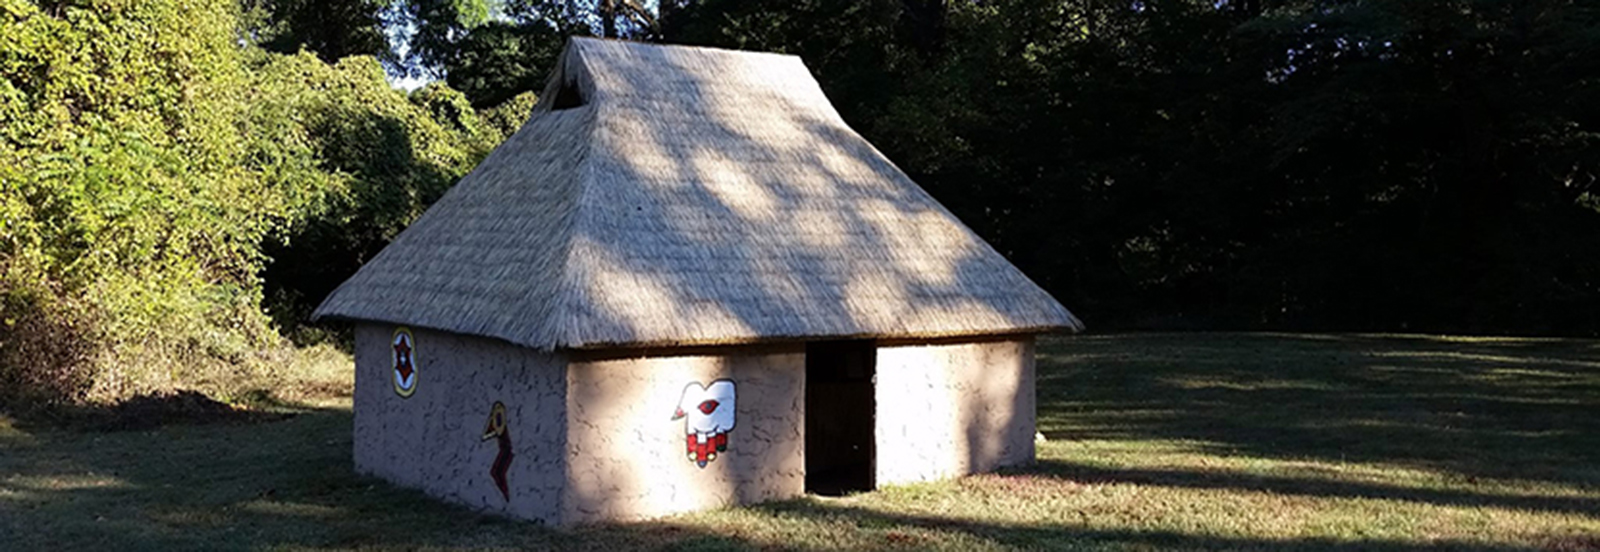 Tour a fully furnished replica house to see how a Native American family would have lived 500 to 1,000 years ago.